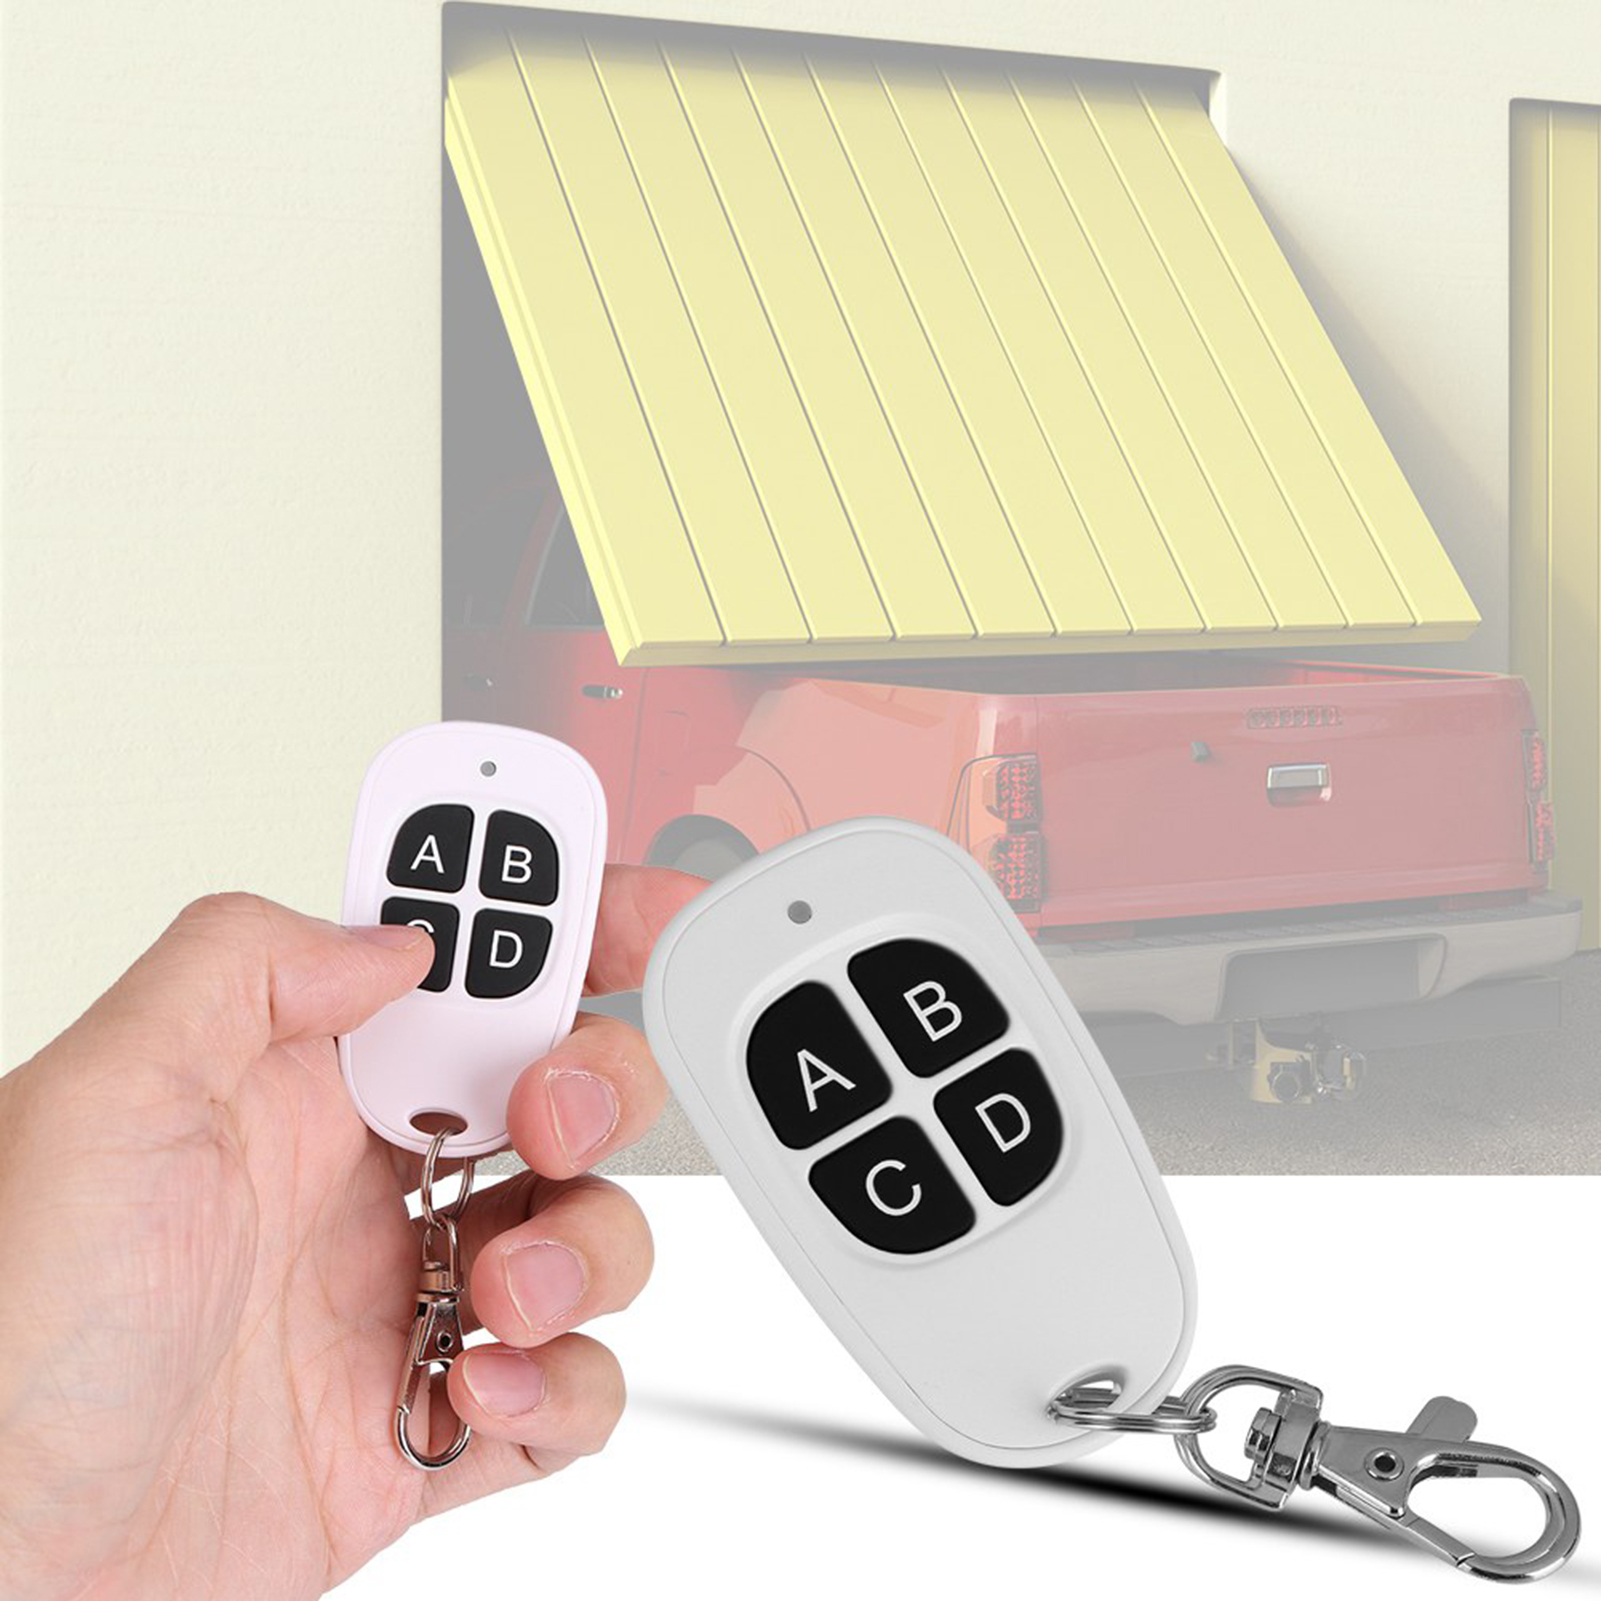 433MHz-EV1527-RF-Wireless-Transmitter-Garage-Door-1-4-Channel-Key-Remote-Control miniature 47